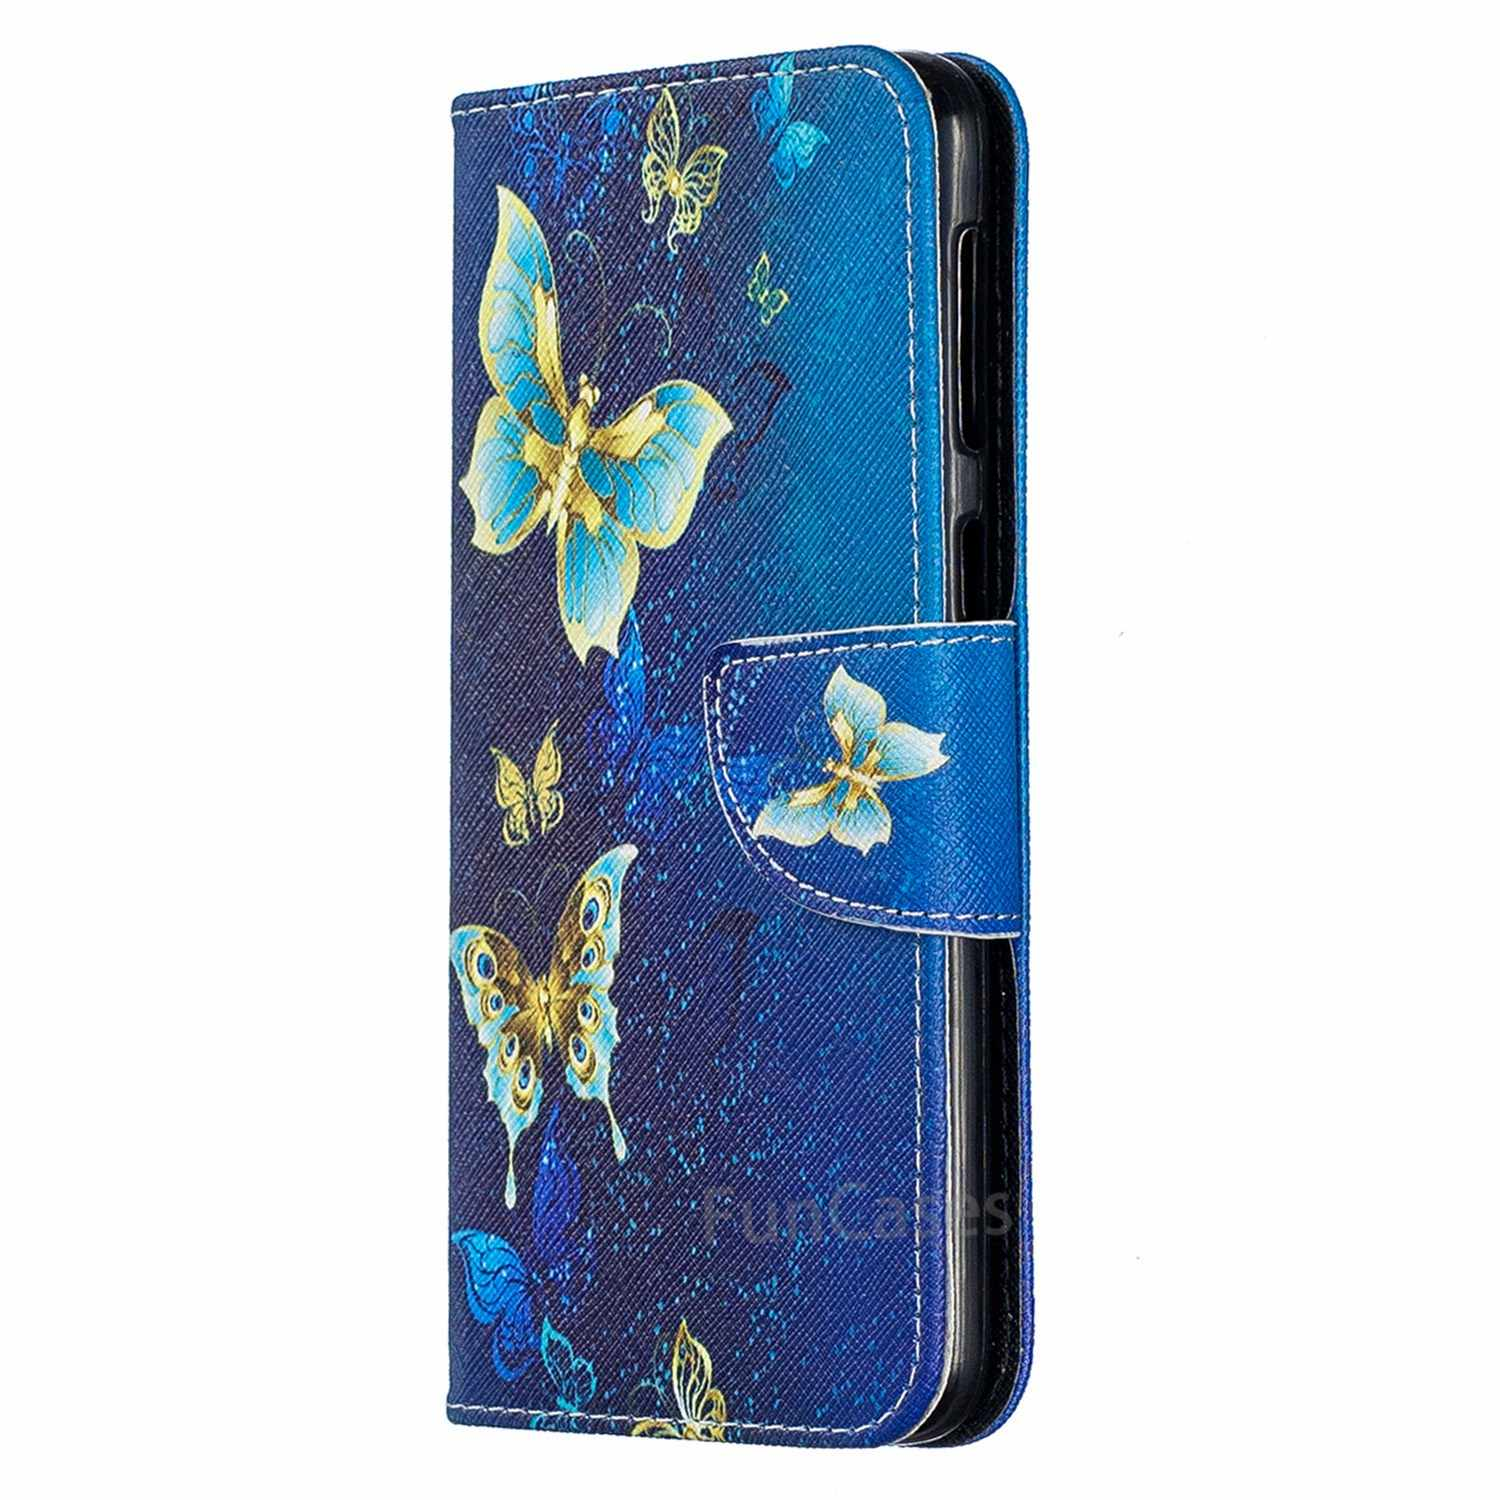 30a94626f2f ... Fundas Carcasas For Samsung M30 Flip Leather Book Card Wallet Phone  Case Caso For Samsung Galaxy ...